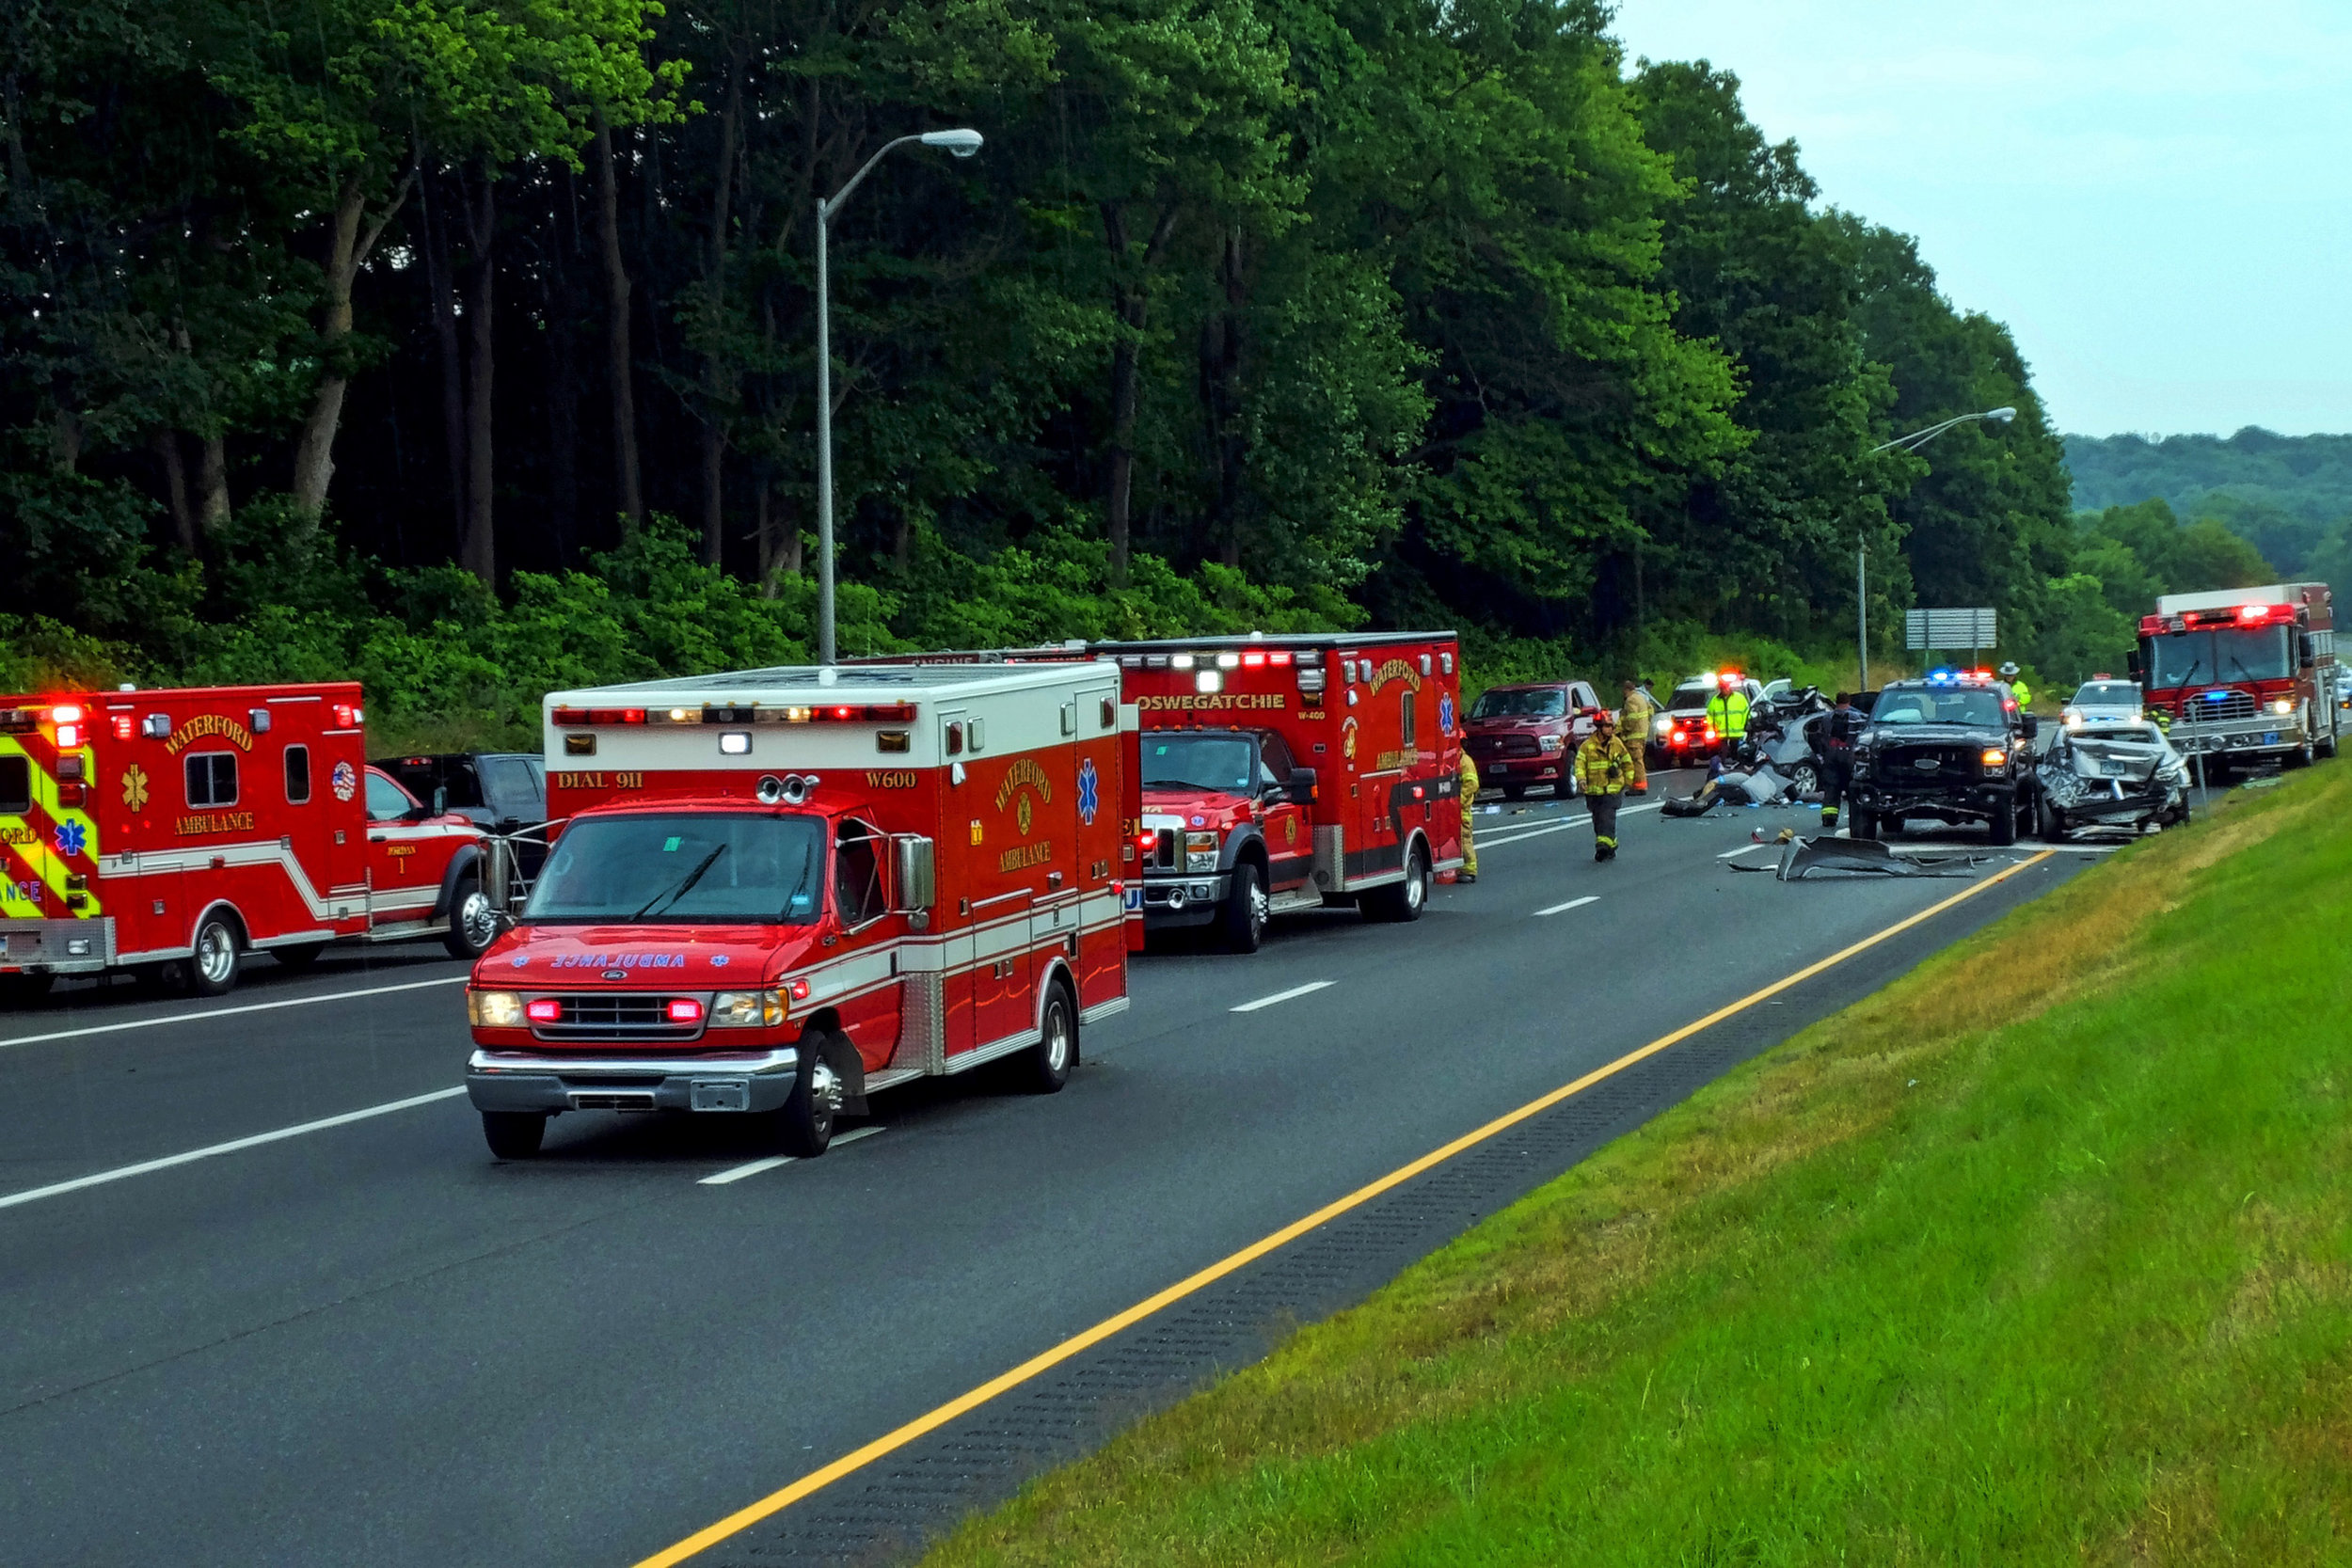 20180715_Waterford_Cohanzie_I95_South_Fatal_MVA_MCI_Exit_81_x0068v2.JPG